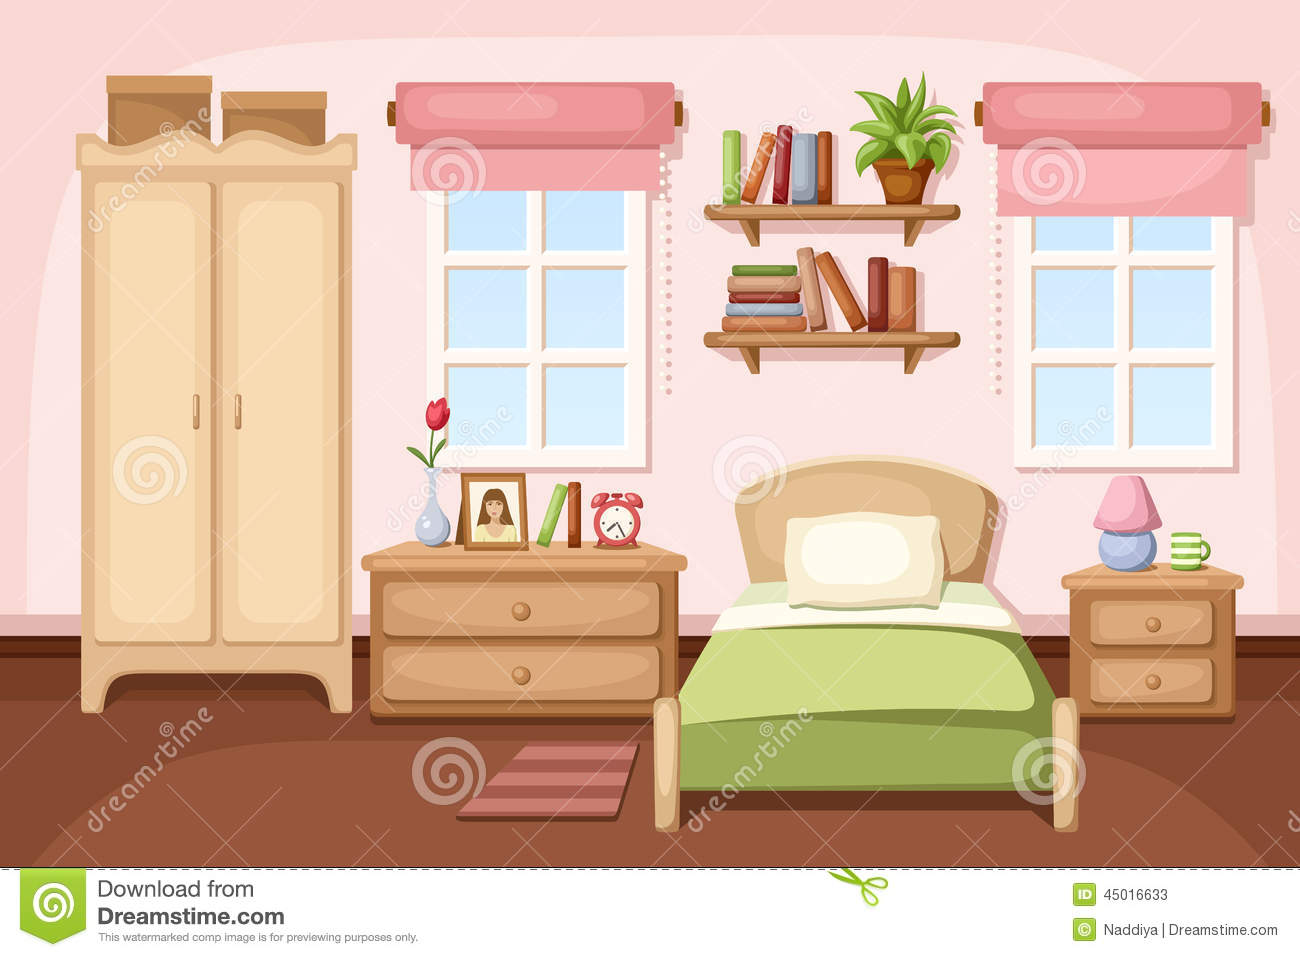 bedroom clipart clipart panda free clipart images. Black Bedroom Furniture Sets. Home Design Ideas